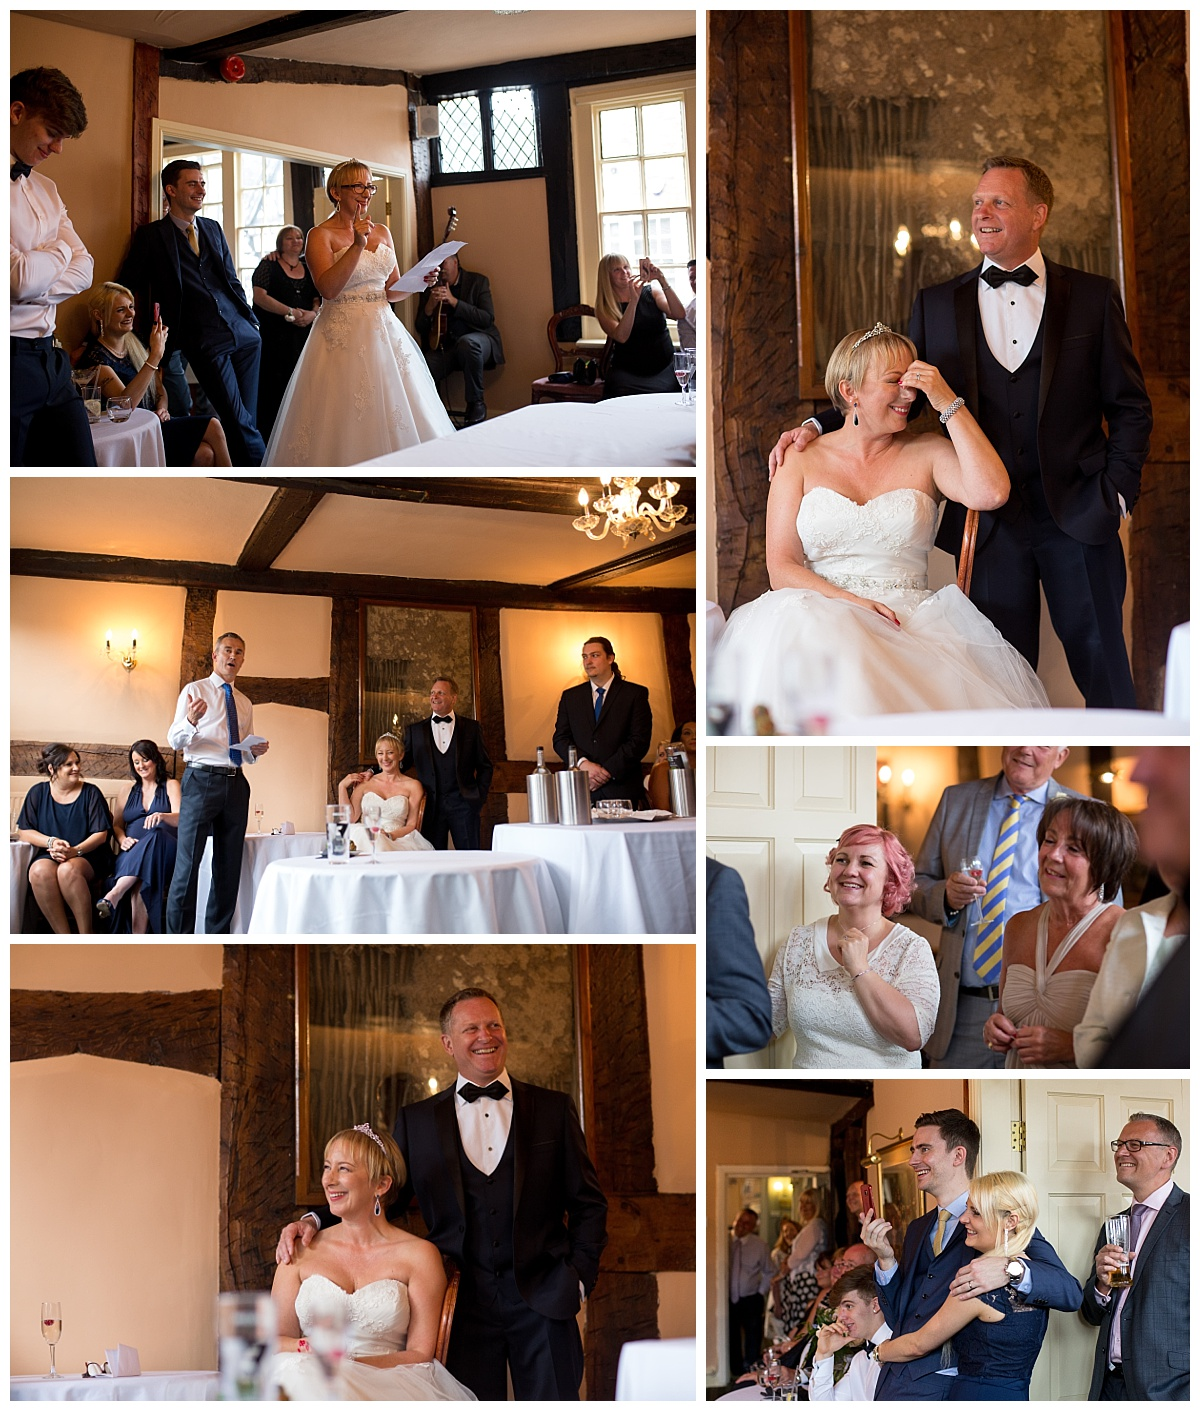 Wedding Photographer Crewe and Nantwich